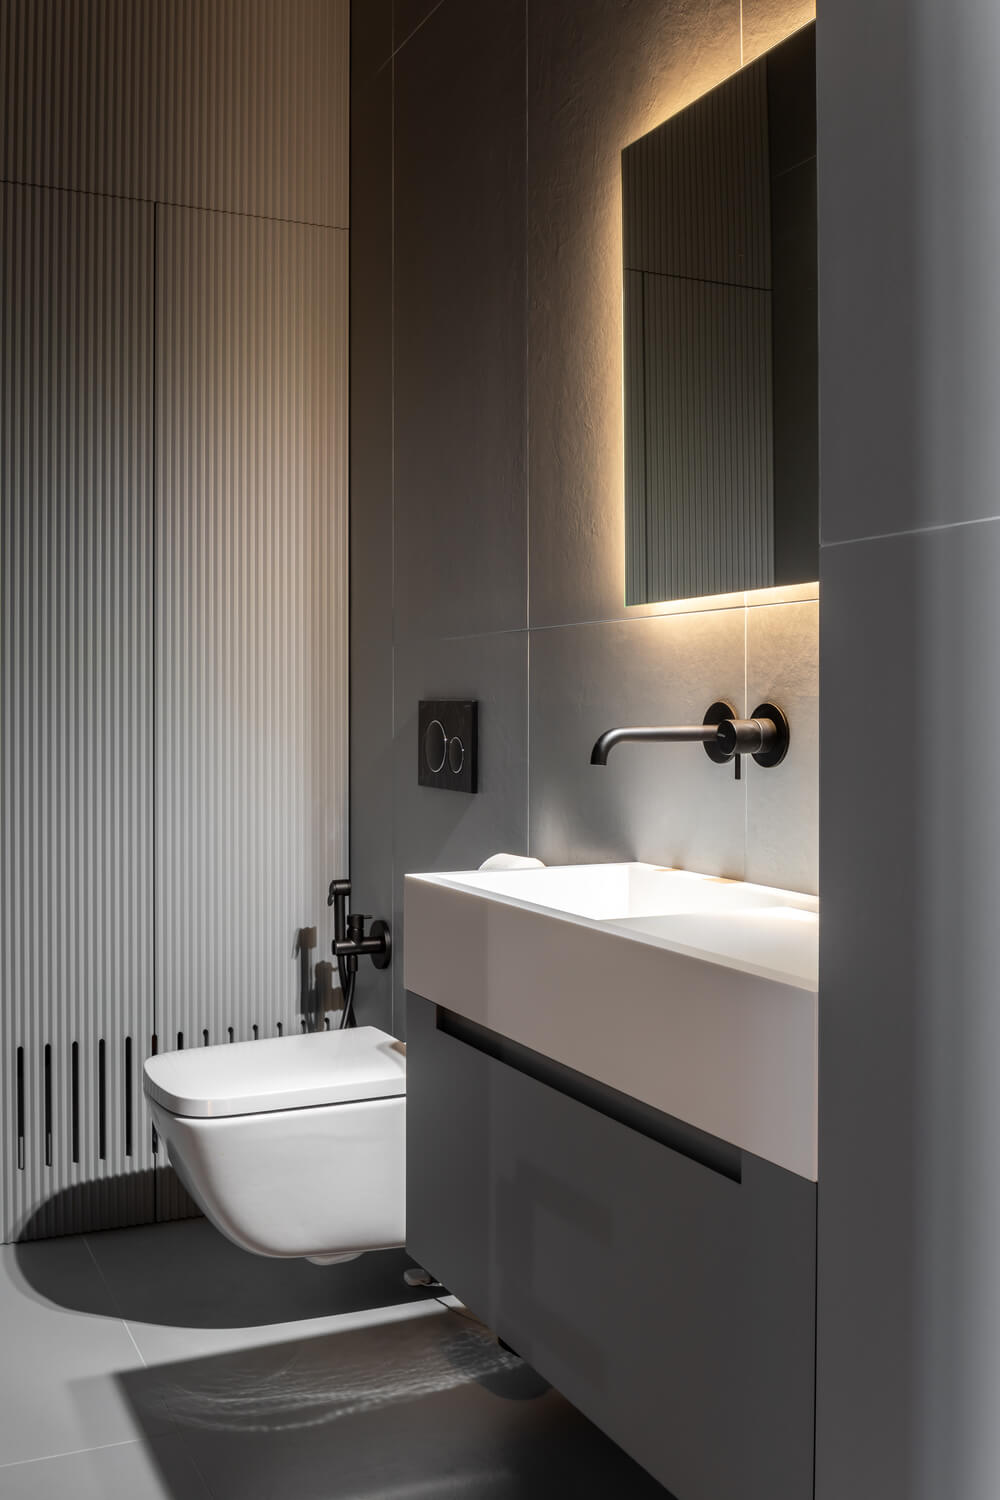 This other bathroom has a modern floating vanity beside the floating toilet.